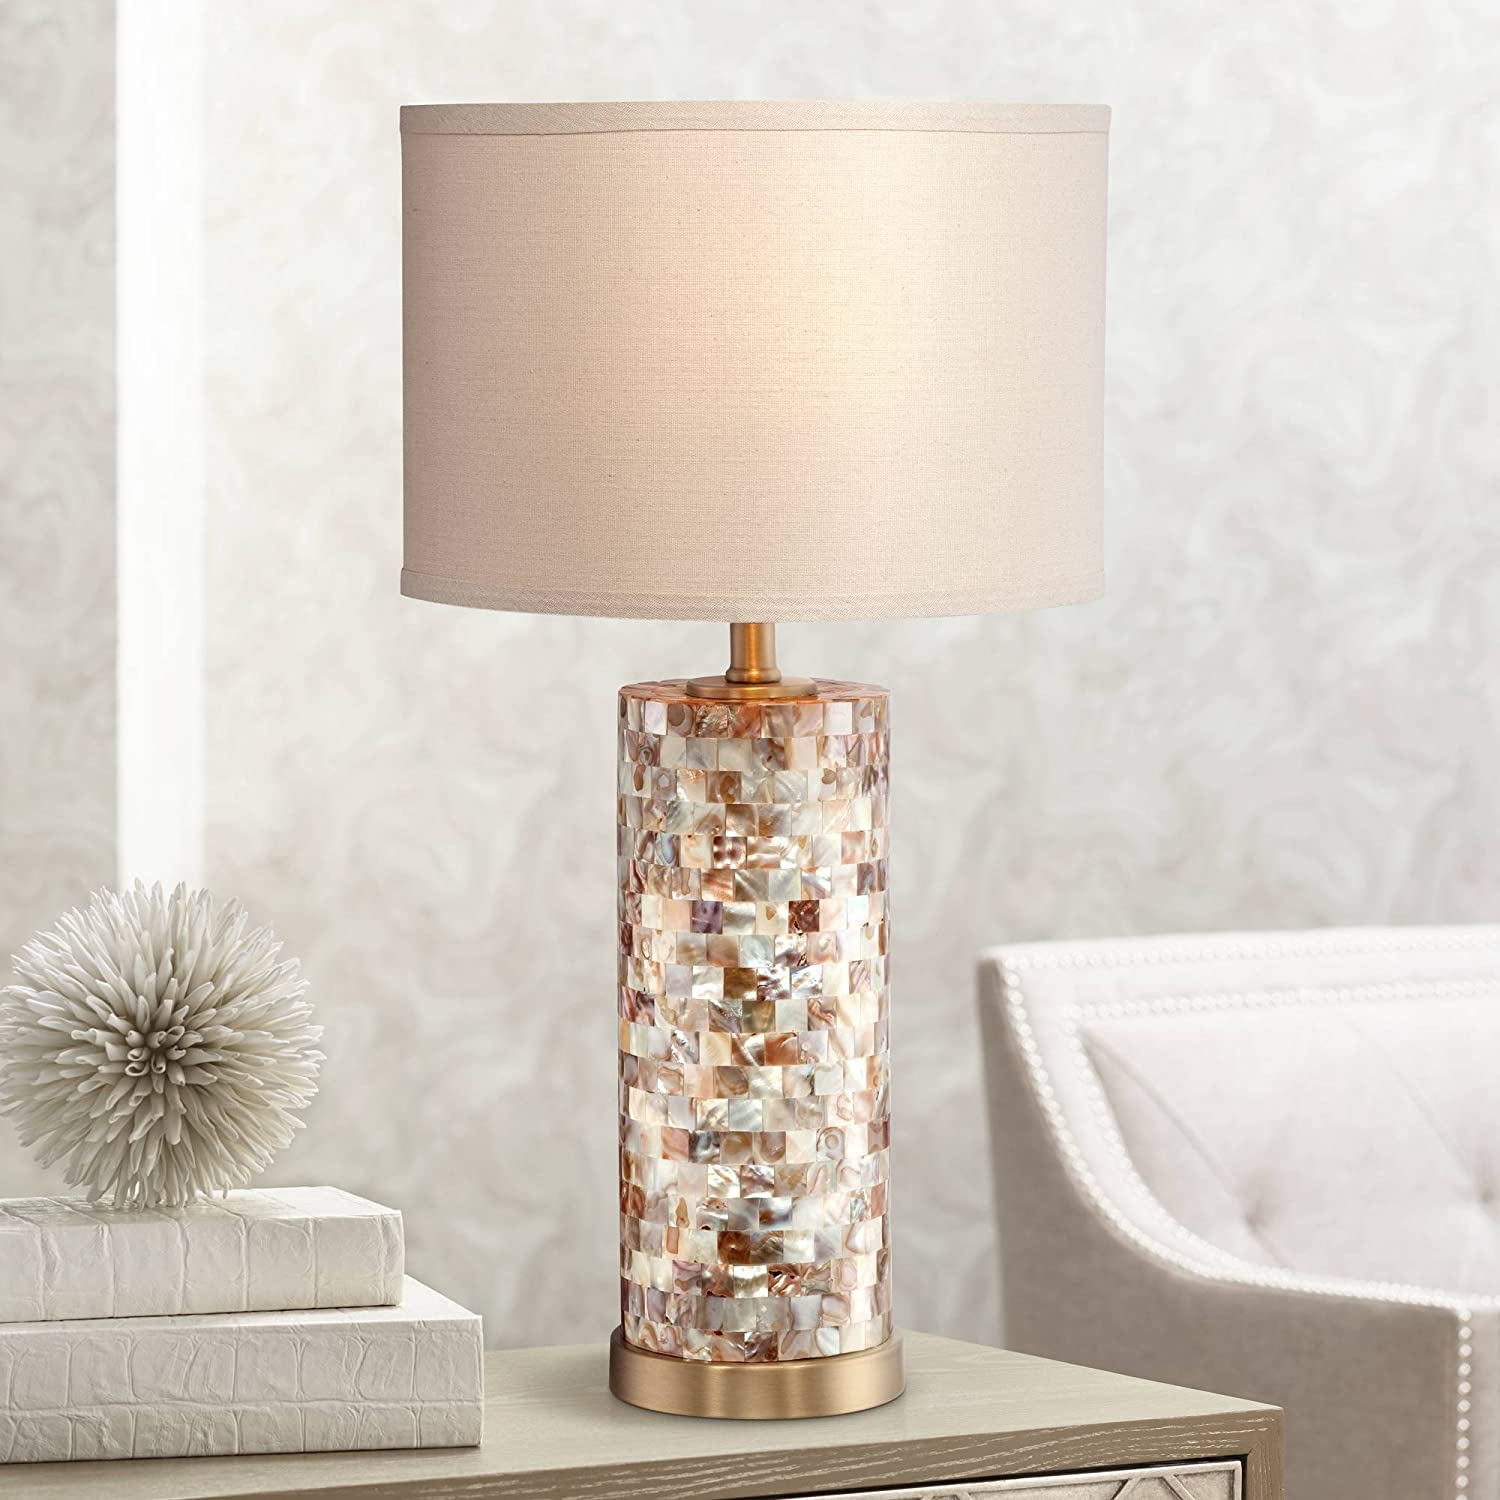 Margaret Coastal Accent Table Lamp Mother of Pearl Tile Cylinder Cream Linen Drum Shade for Living Room Family Bedroom Bedside - 360 Lighting